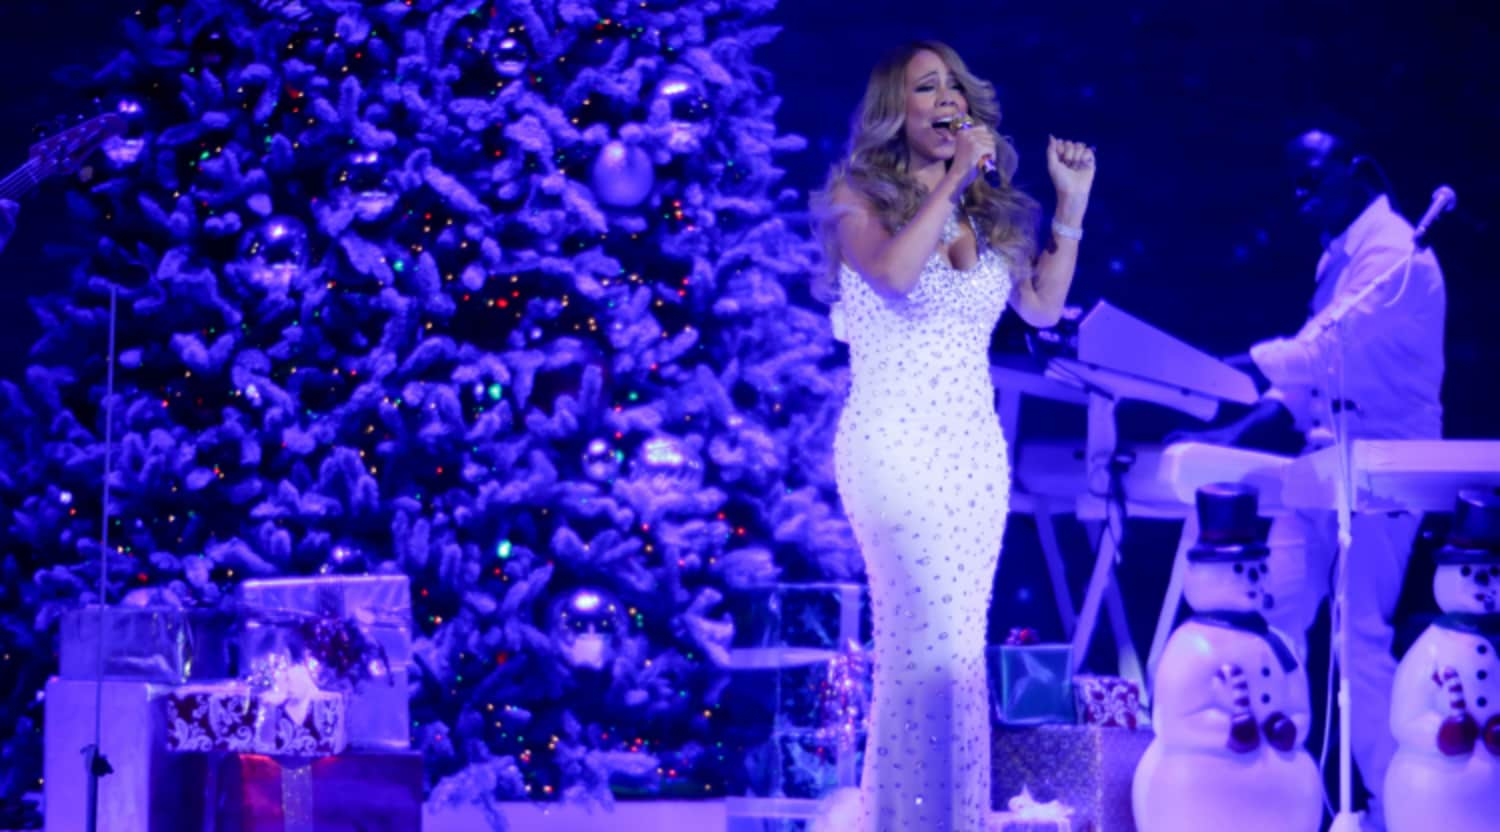 Christmas Concerts 2020 Utah Stubhub Mariah Carey Tickets   Mariah Carey Concert Tickets and Tour Dates